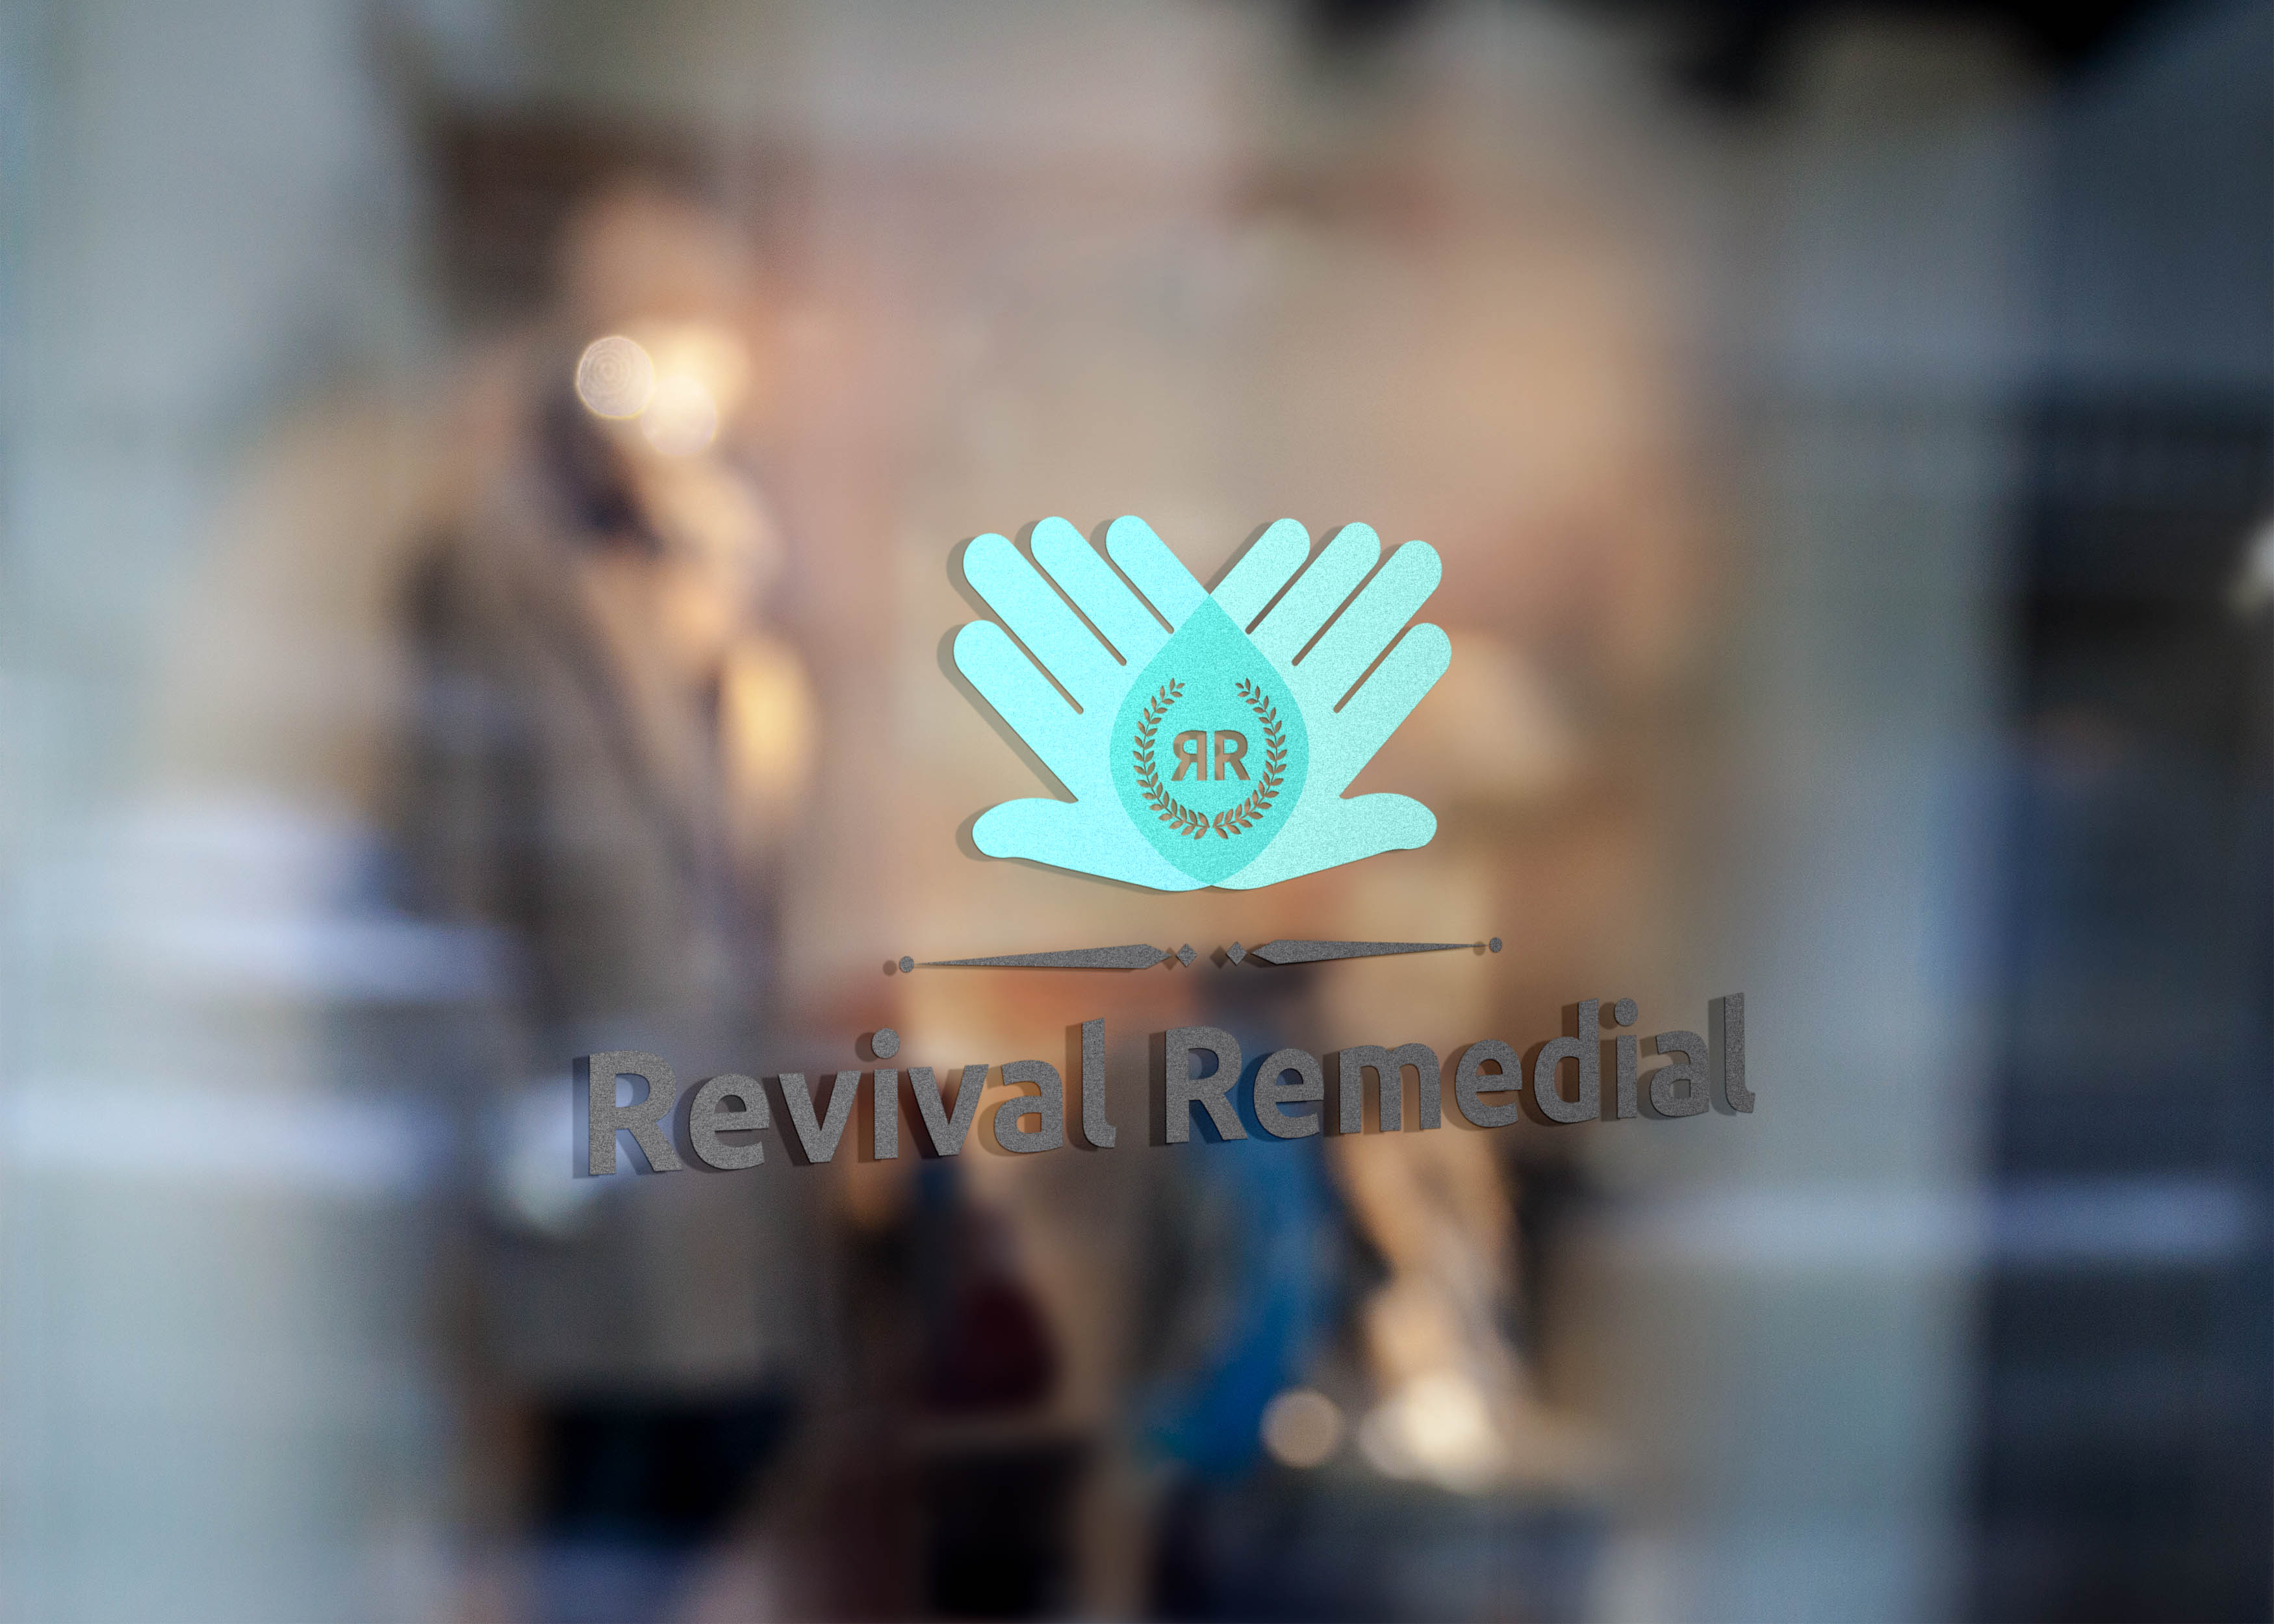 Check out our new logo for Revival Remedial!